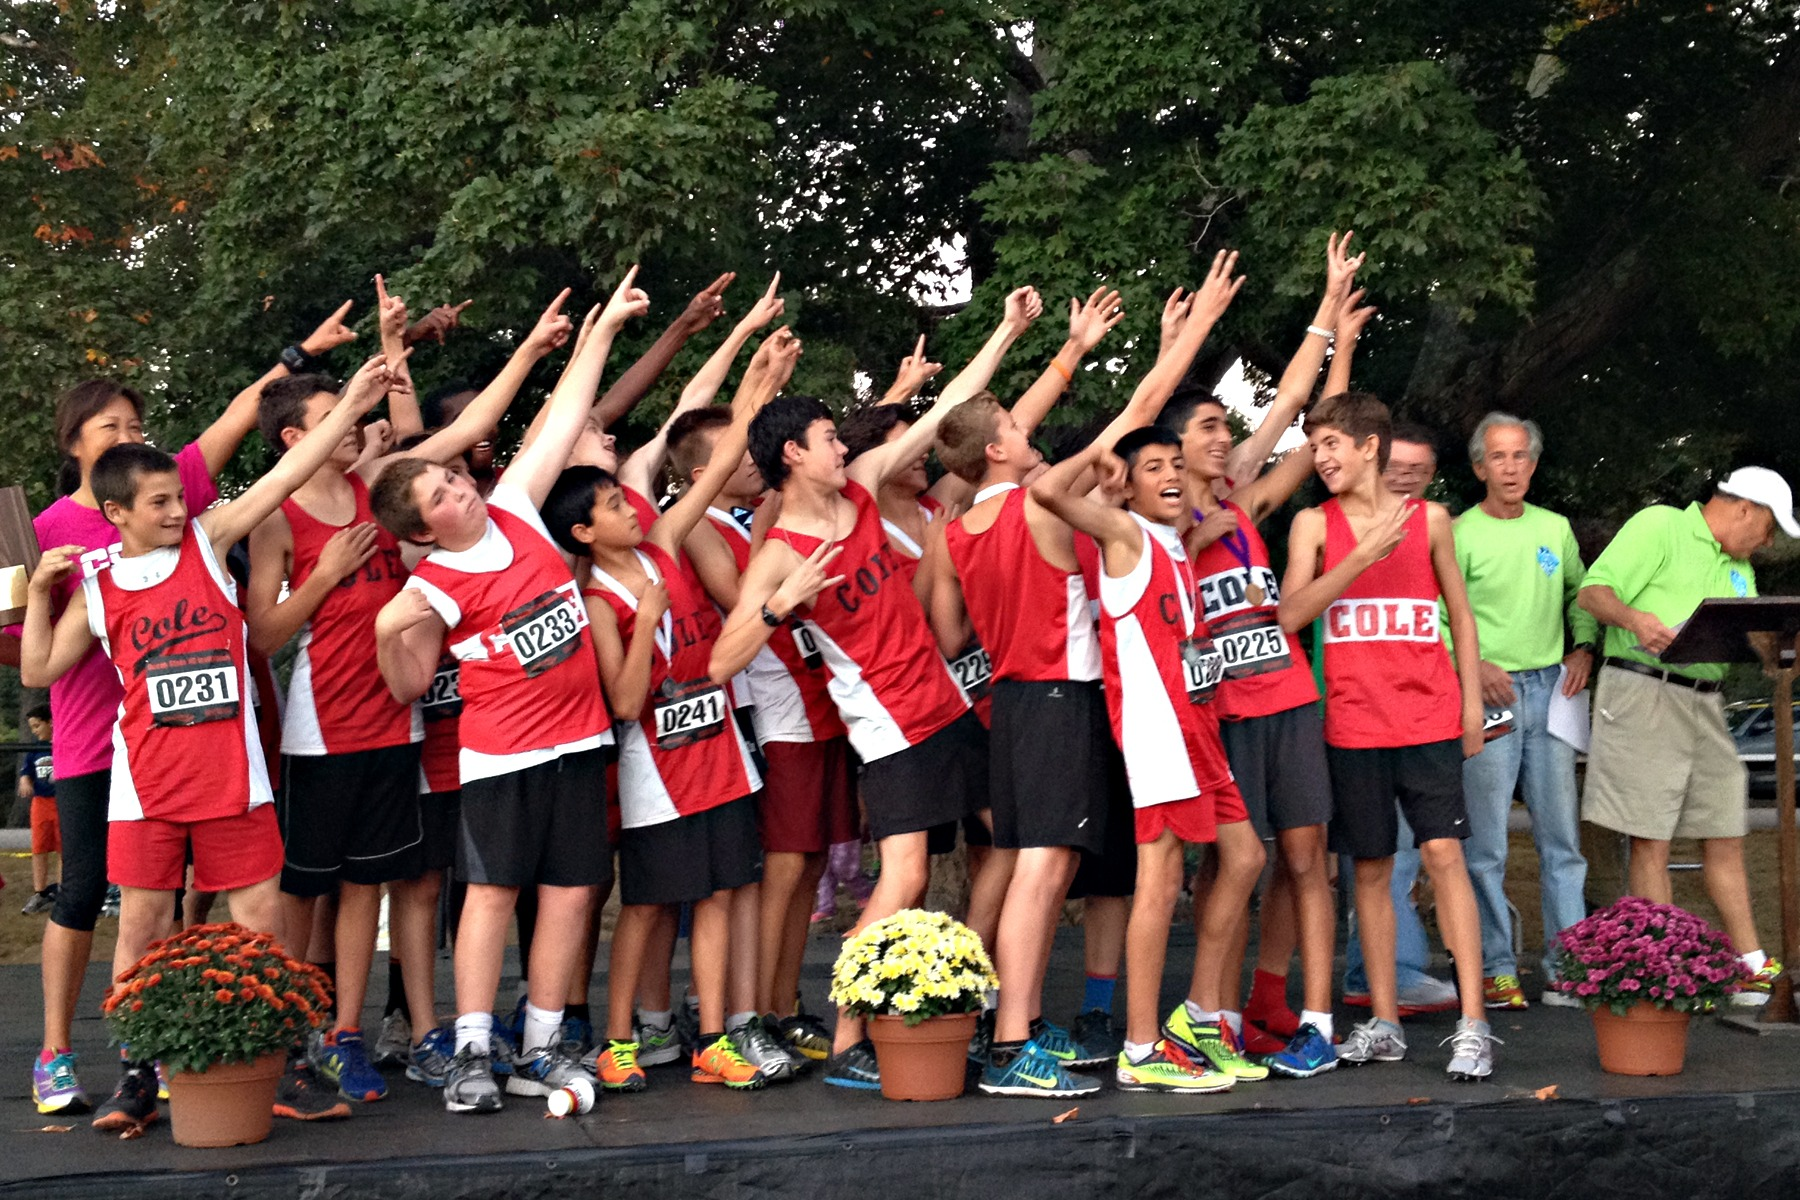 Cole Cross Country Cleans Up at Recent Meet